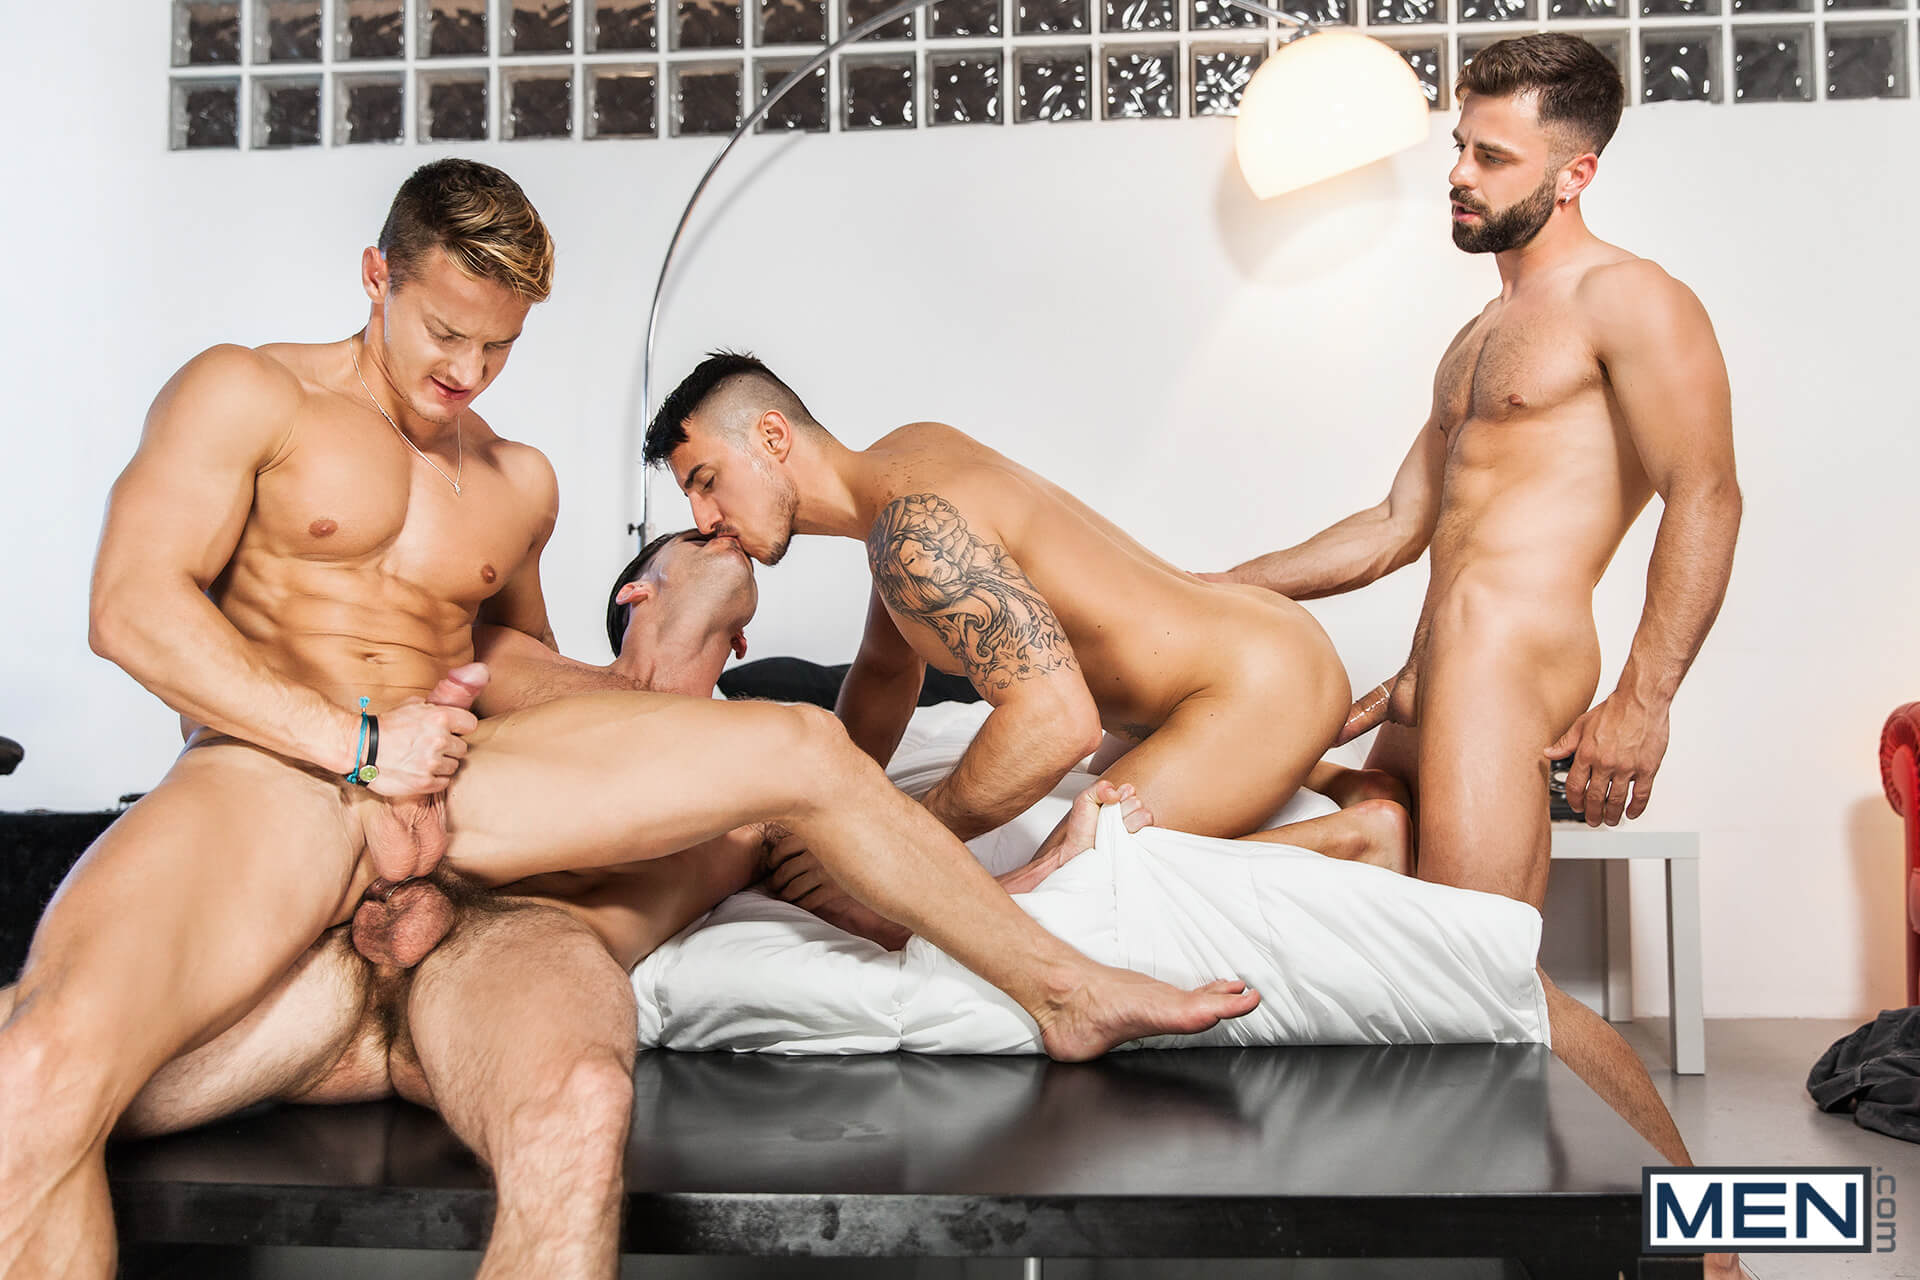 men jizz orgy the weekend away part 3 darius ferdynand hector de silva klein kerr paddy obrian gay porn blog image 21